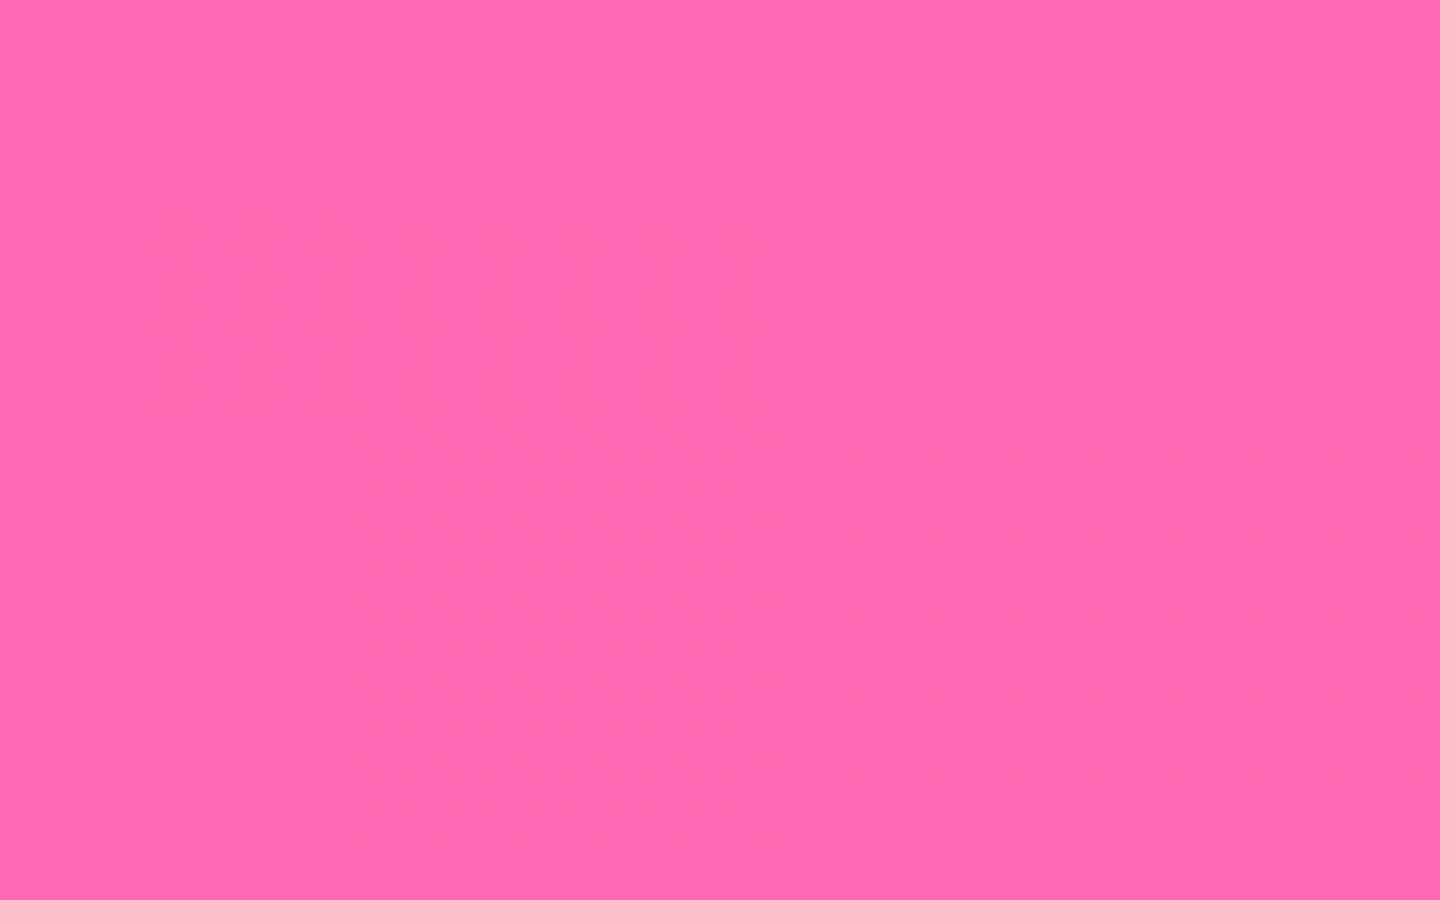 Free Download Solid Hot Pink Background Images Amp Pictures Becuo 1920x1080 For Your Desktop Mobile Tablet Explore 78 Color Pink Background Light Pink Wallpaper Images Pink Wallpaper Backgrounds You can also upload and share your favorite aesthetic simpsons computer wallpapers. free download solid hot pink background